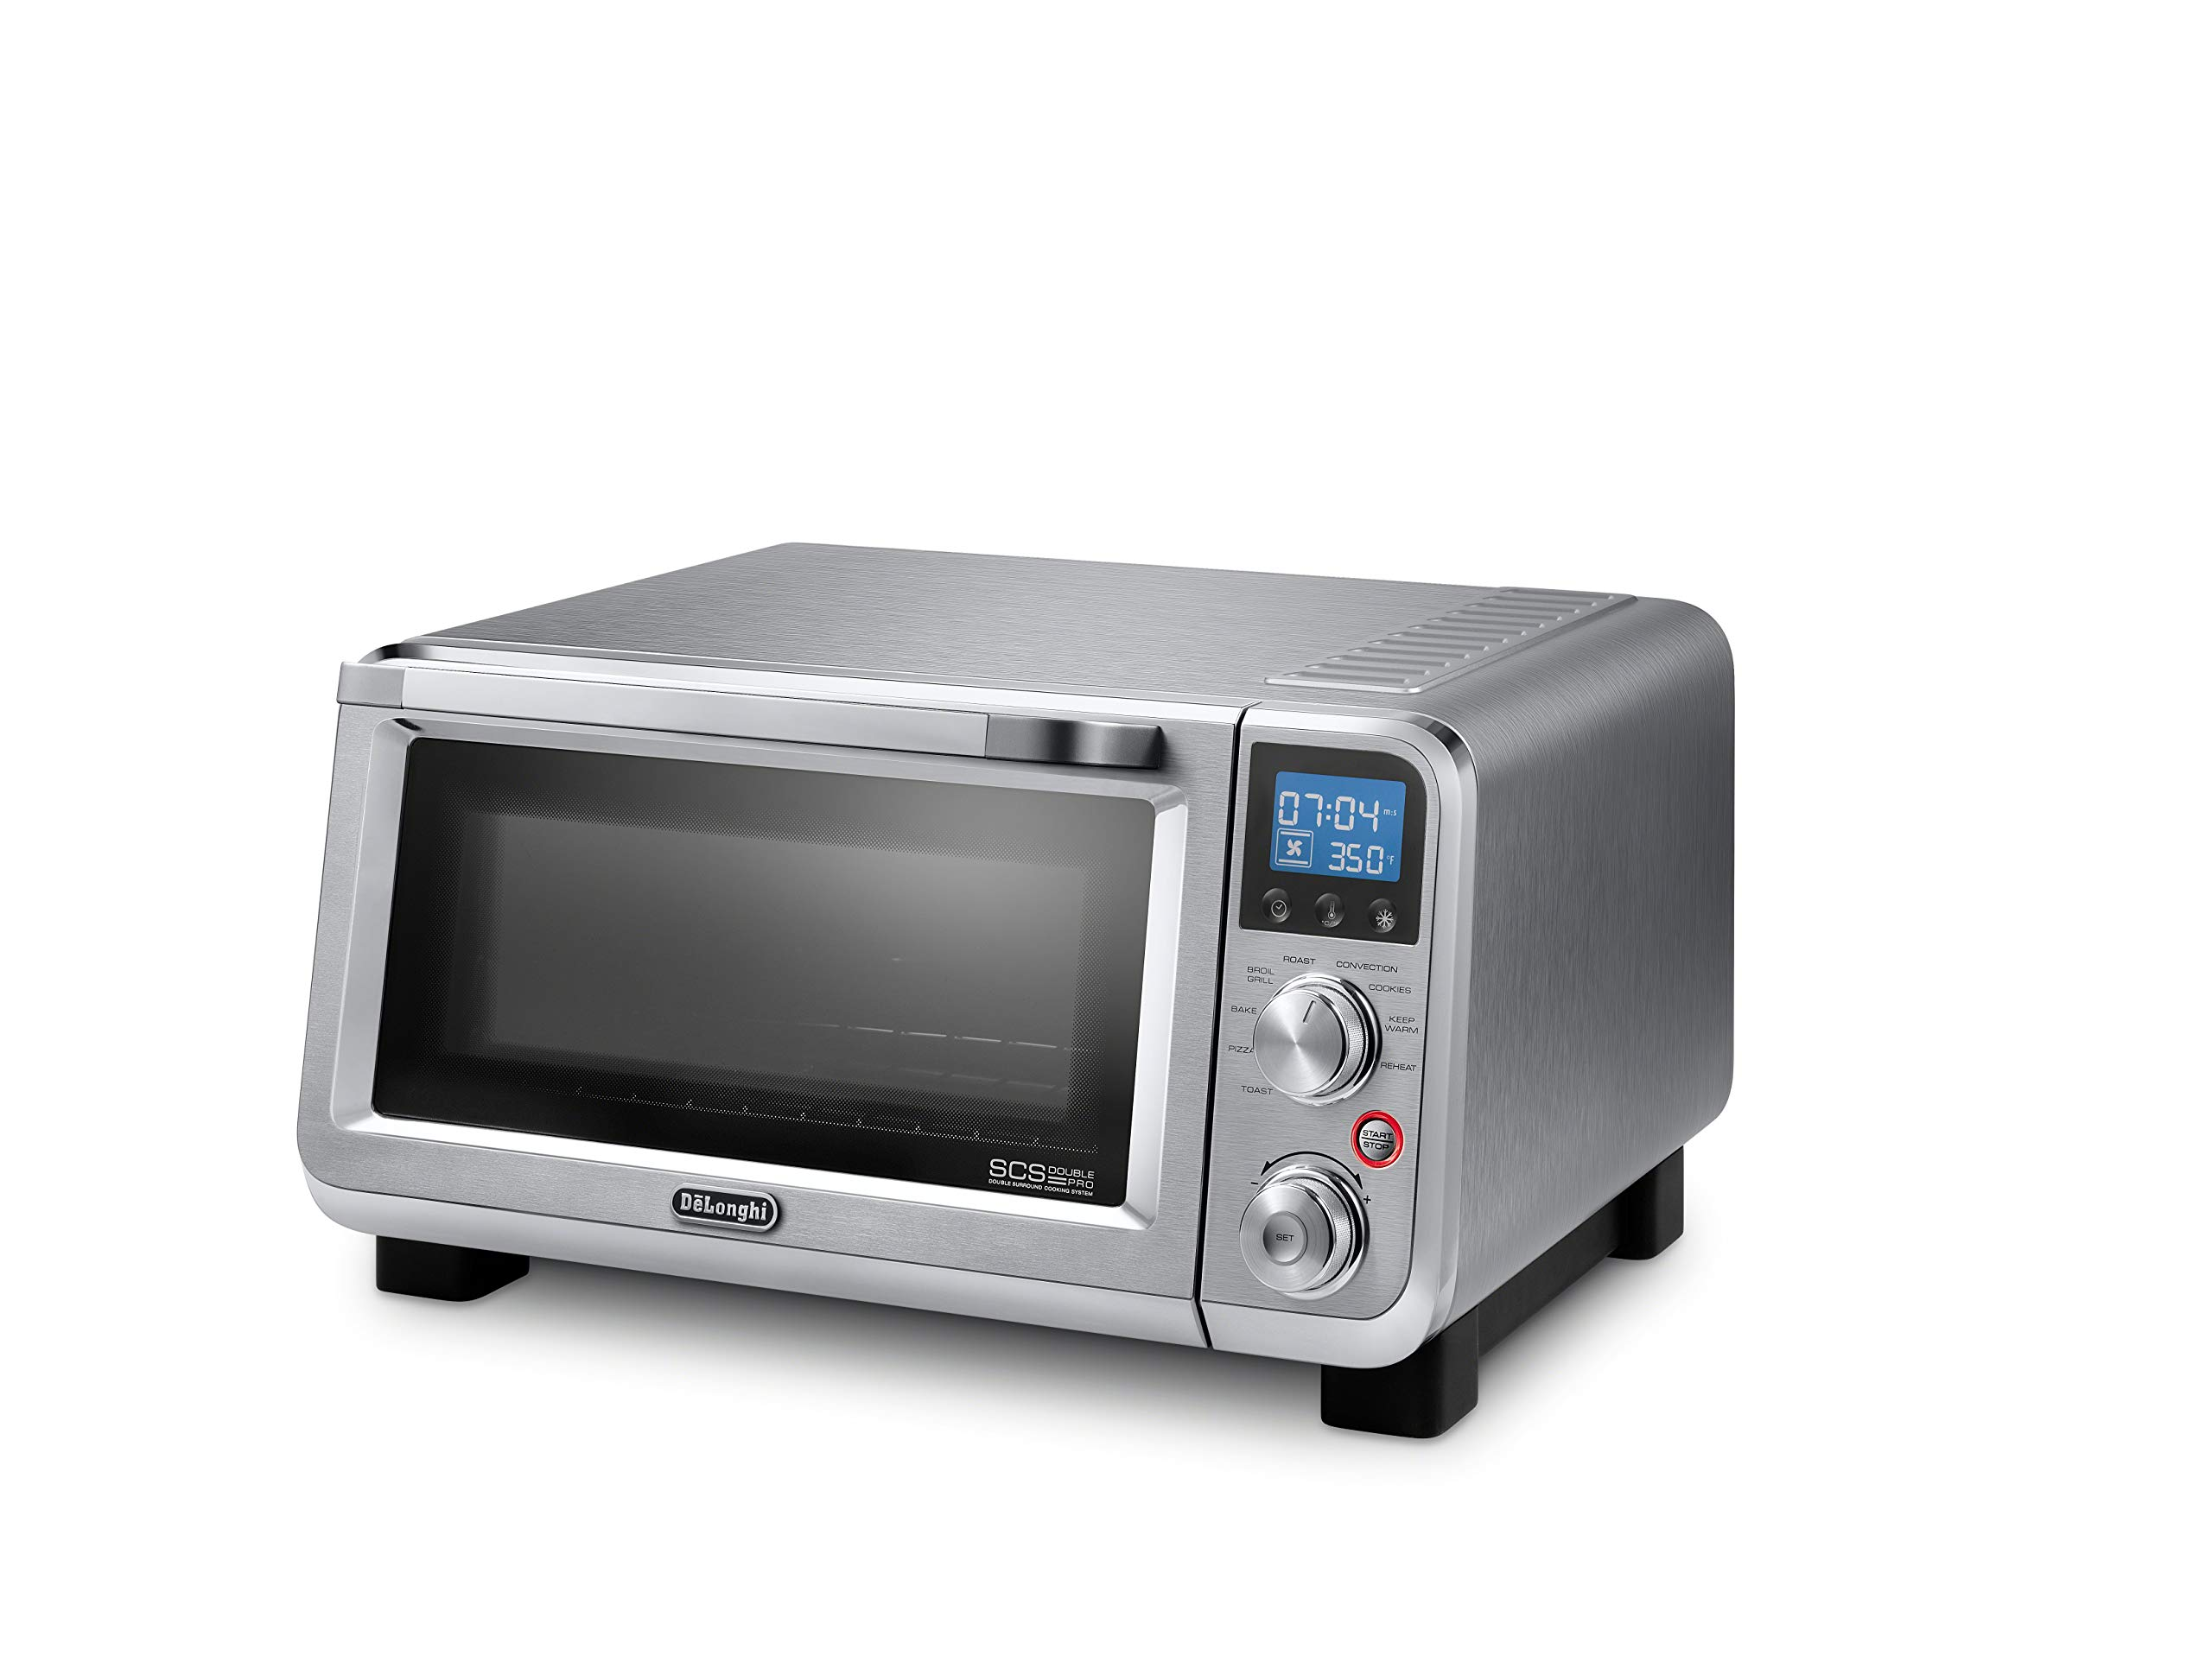 De'Longhi EO141150M Livenza Compact 1800W Countertop Convection Toaster Oven, 9 Presets Roast, Broil, Bake, Easy to Use, 14L (.5 cu ft), Stainless Steel by De'Longhi